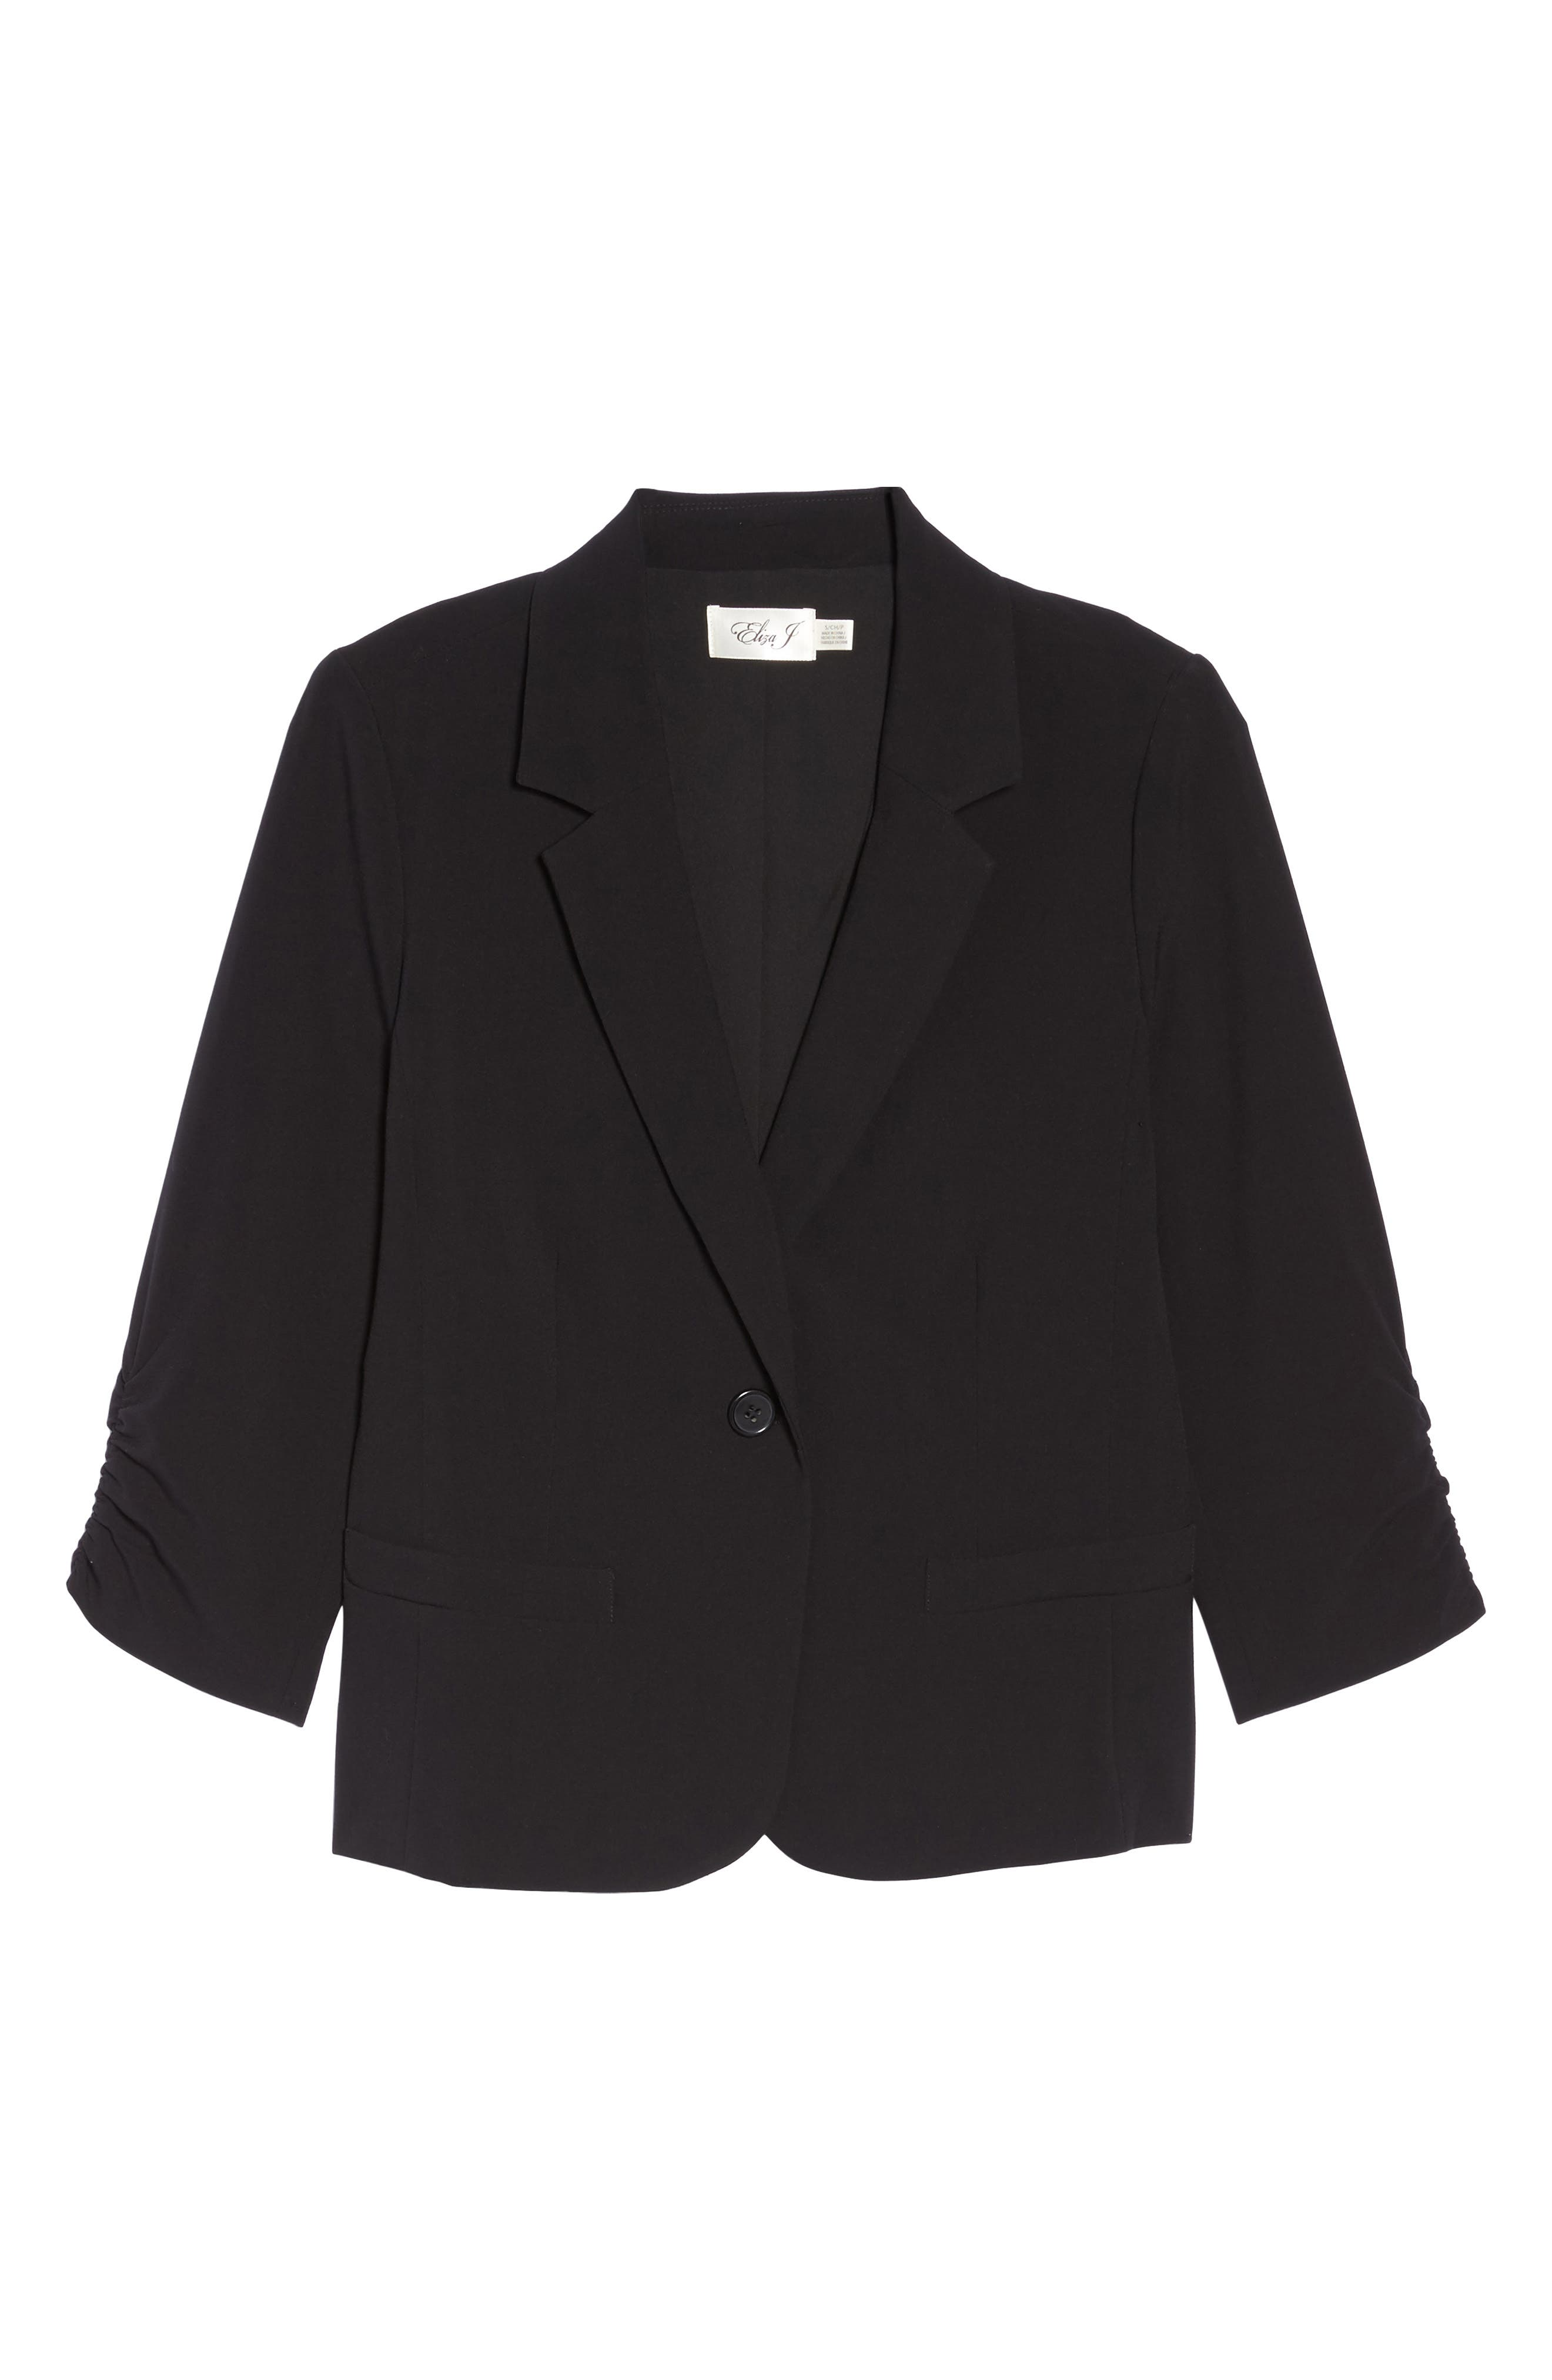 Ruched Sleeve Blazer,                             Alternate thumbnail 6, color,                             Black